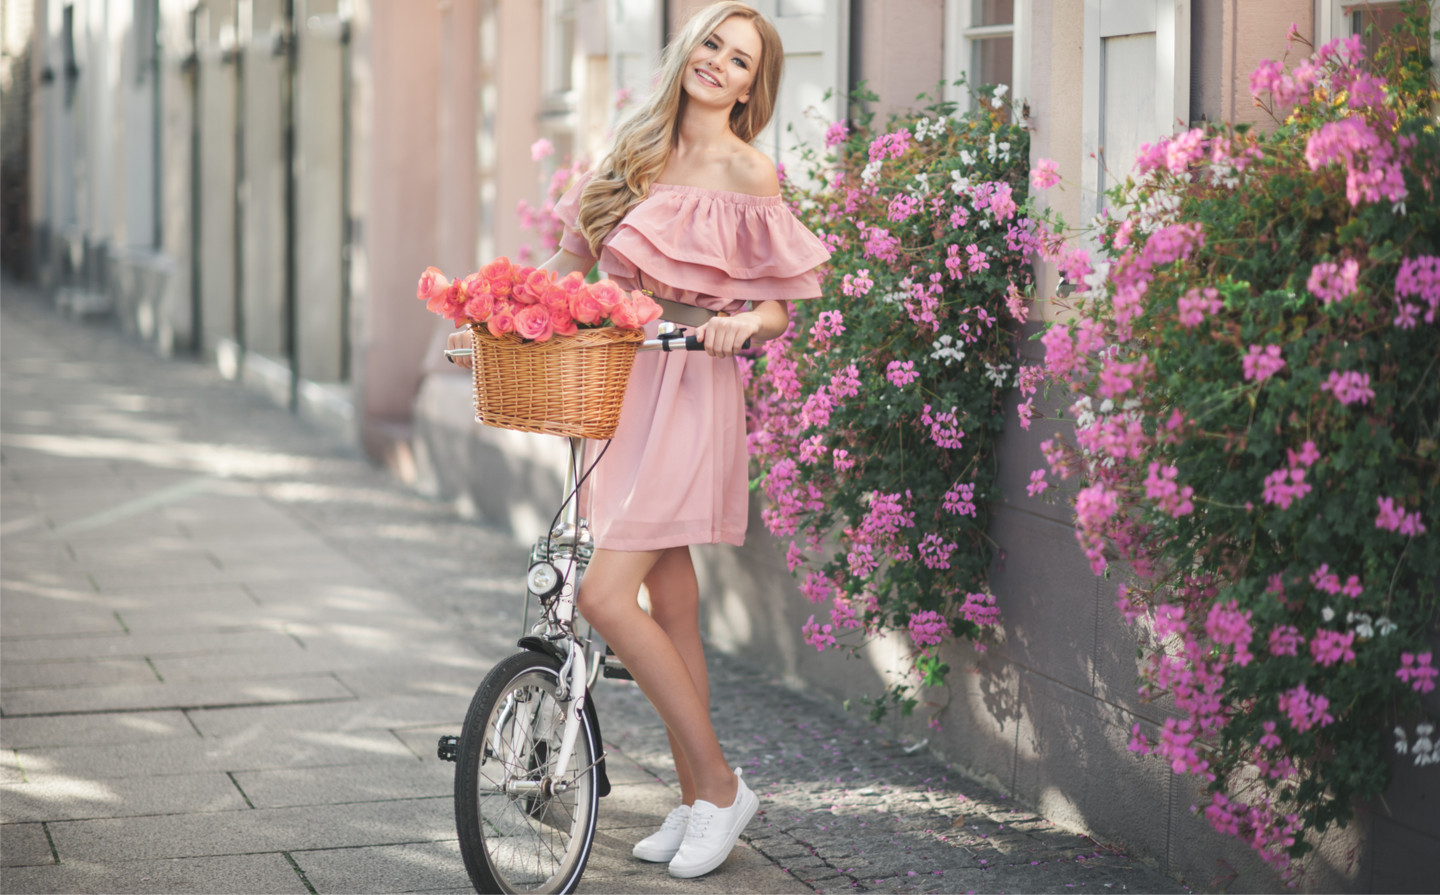 wholesaler ready to wear makes you discover his new collection of women's clothing and large size made in Italy cheap spring 2020 fashion online